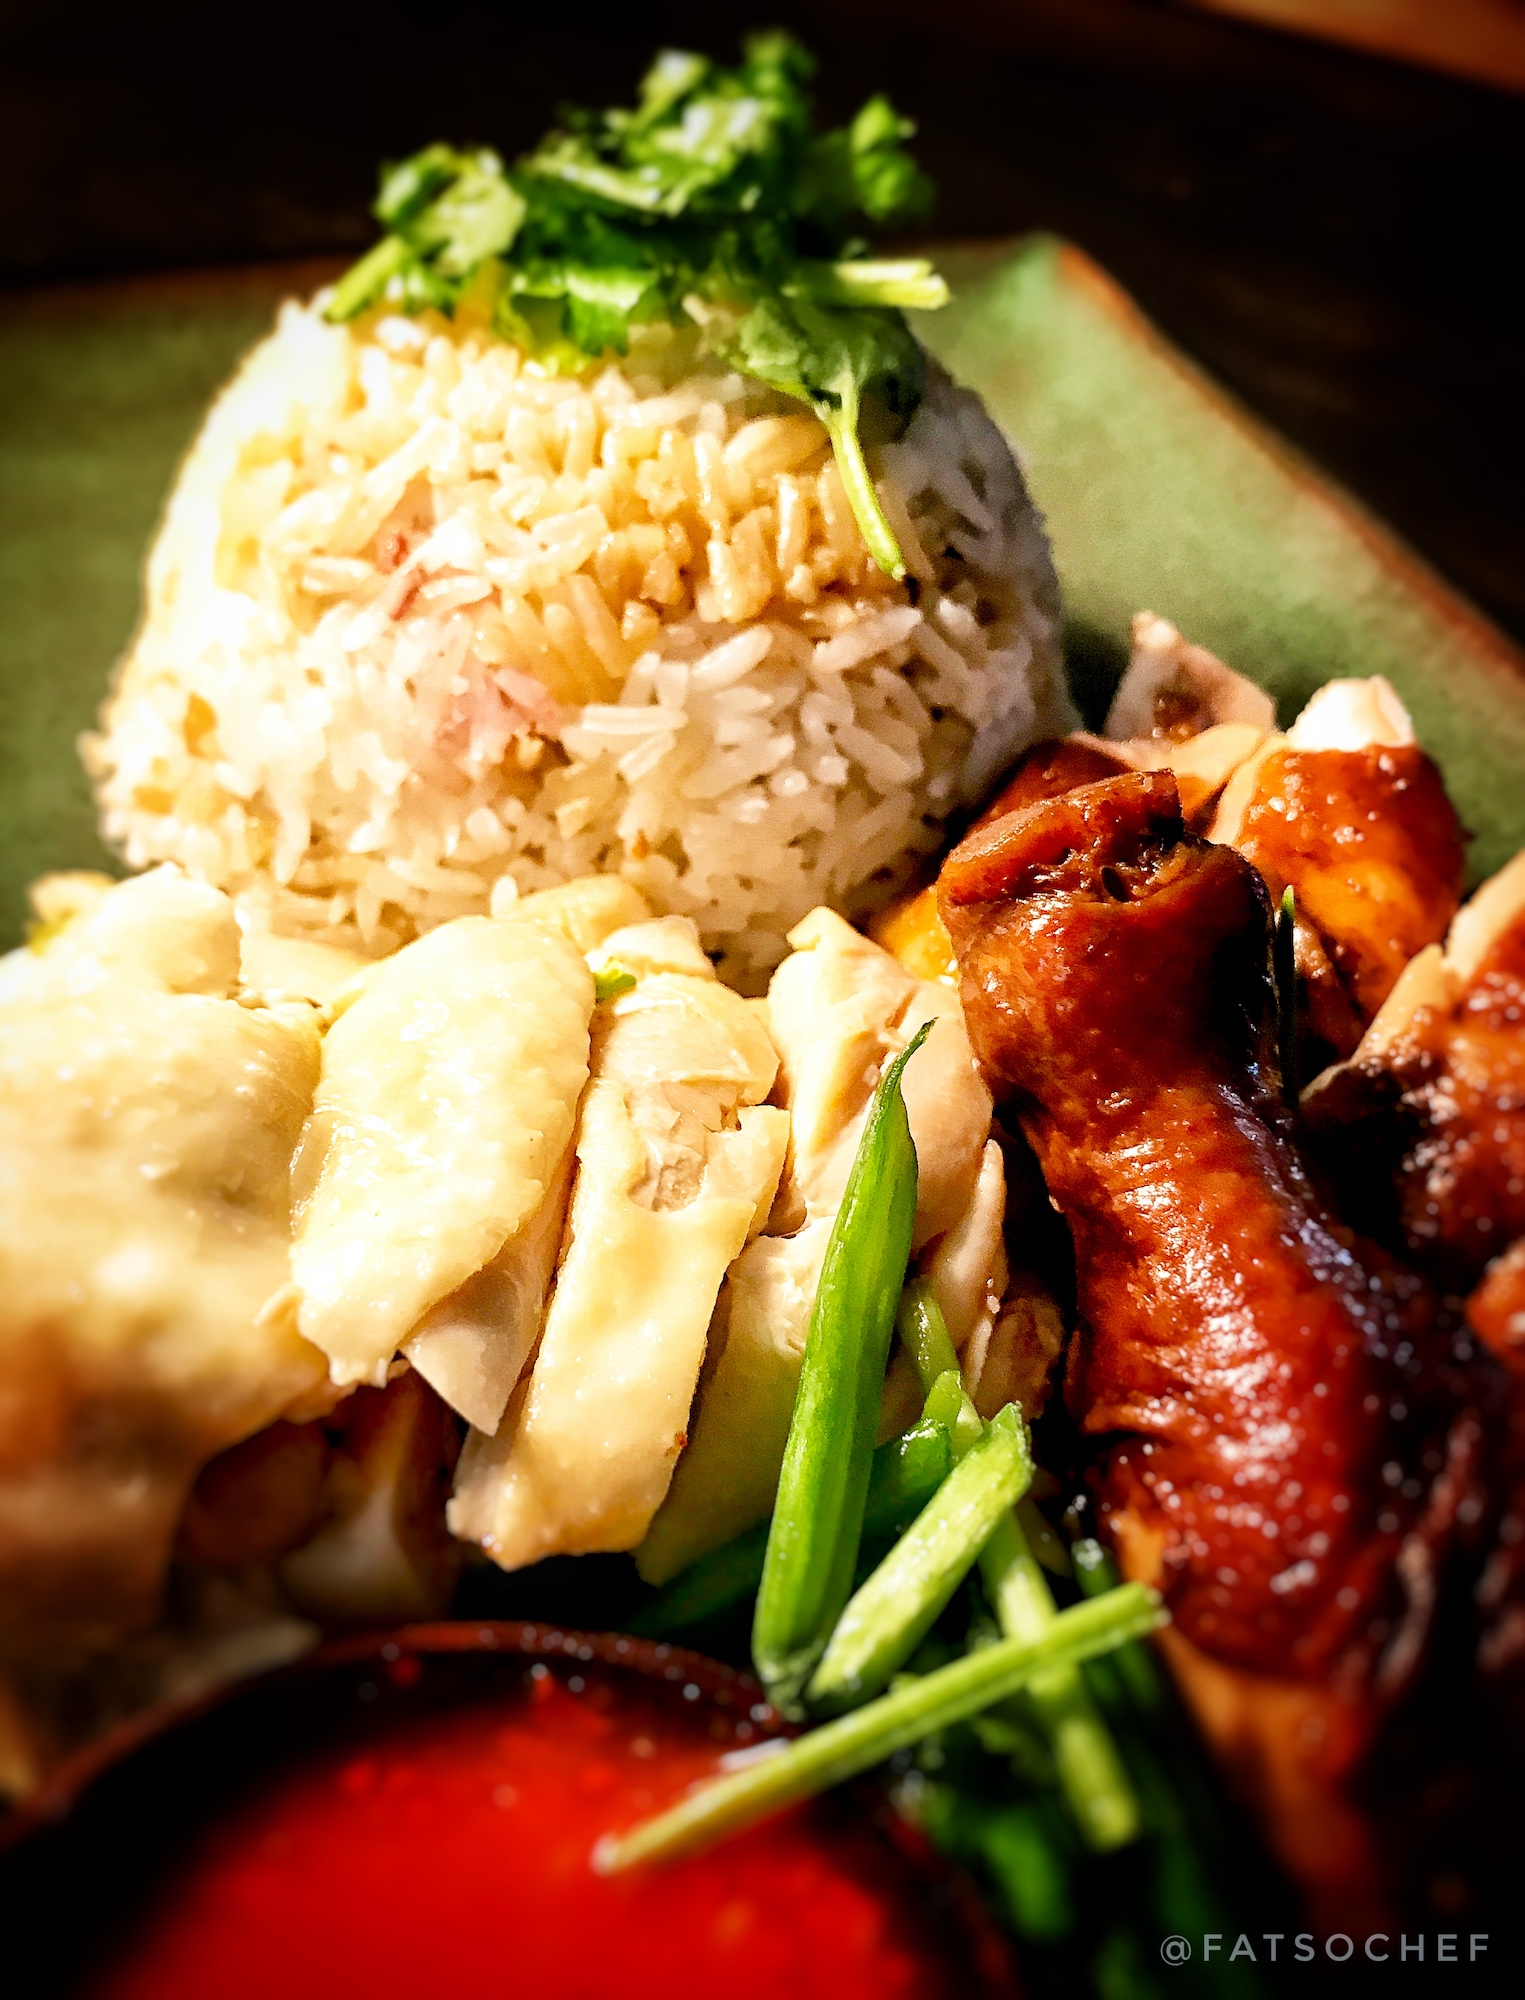 Singapore - Hainanese Chicken - 1525 - 2000